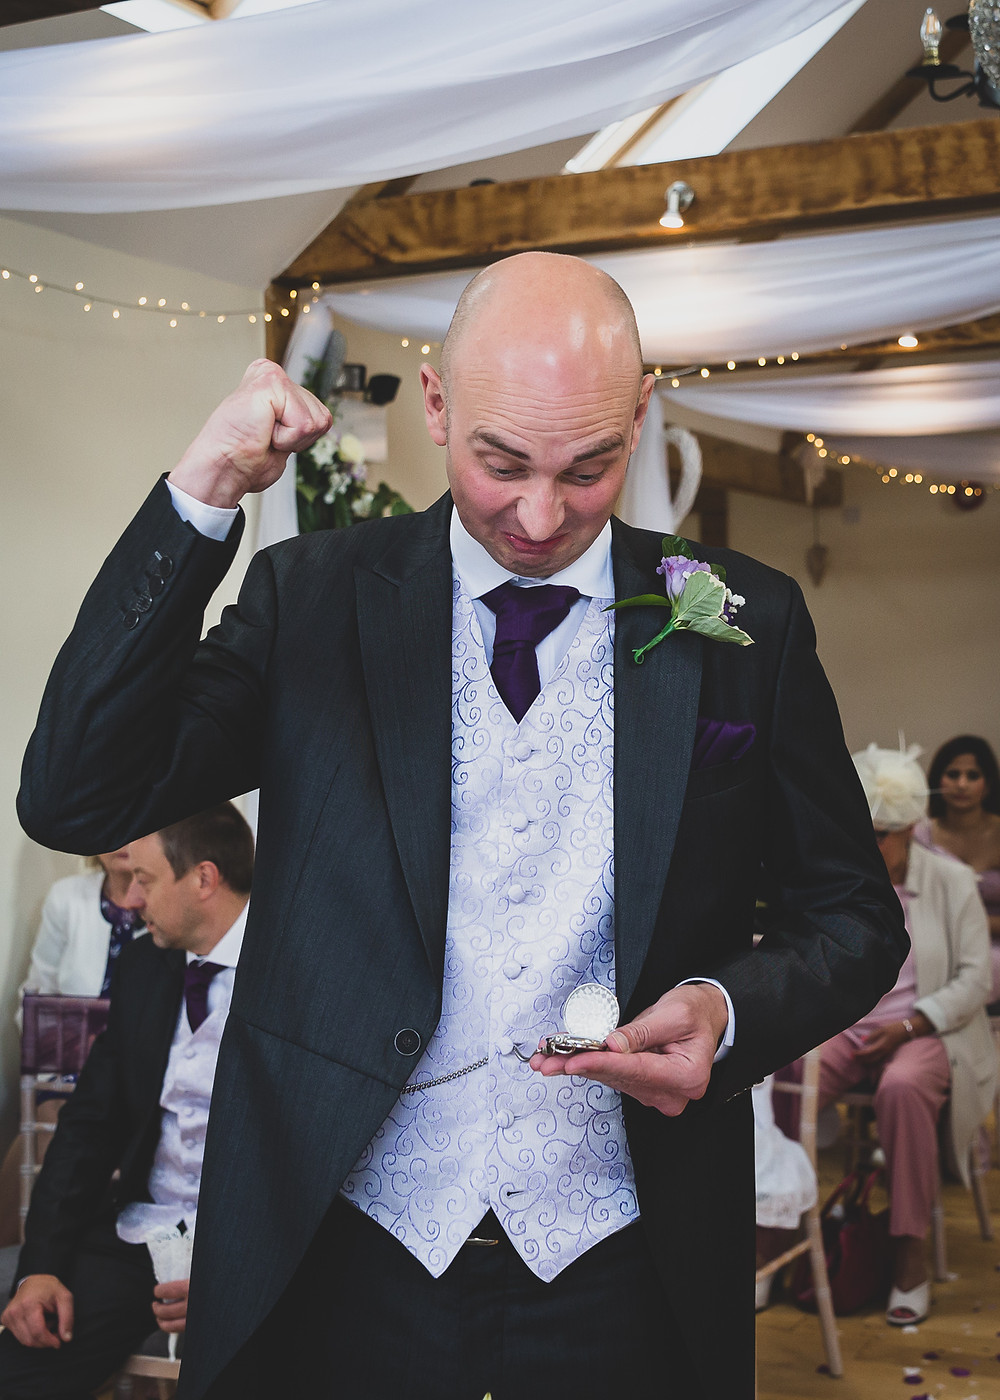 late bride to the wedding wedding pocket watch by Steve and Tania Photography